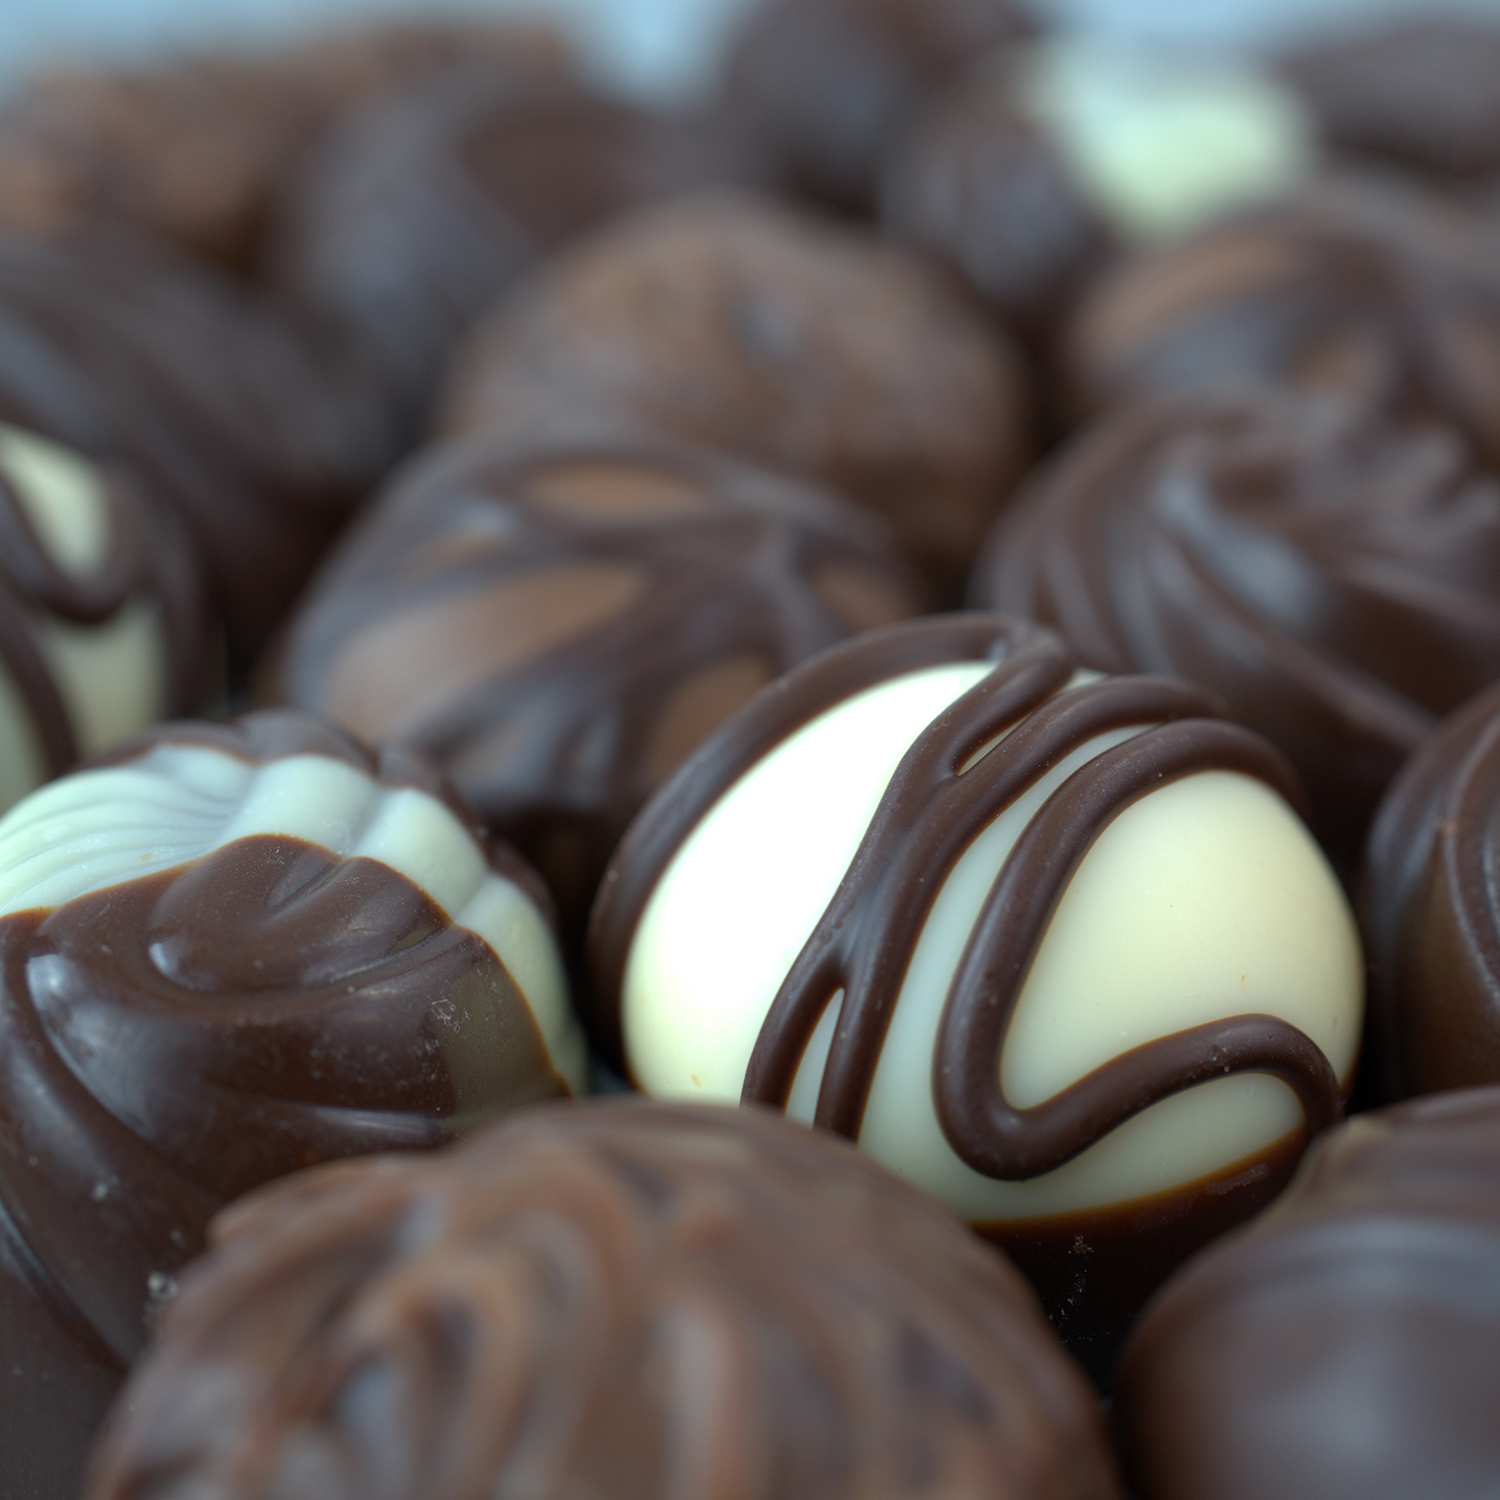 CHOCOLATE TRUFFLES - STARTING AT $30 (+ tax) FOR 6